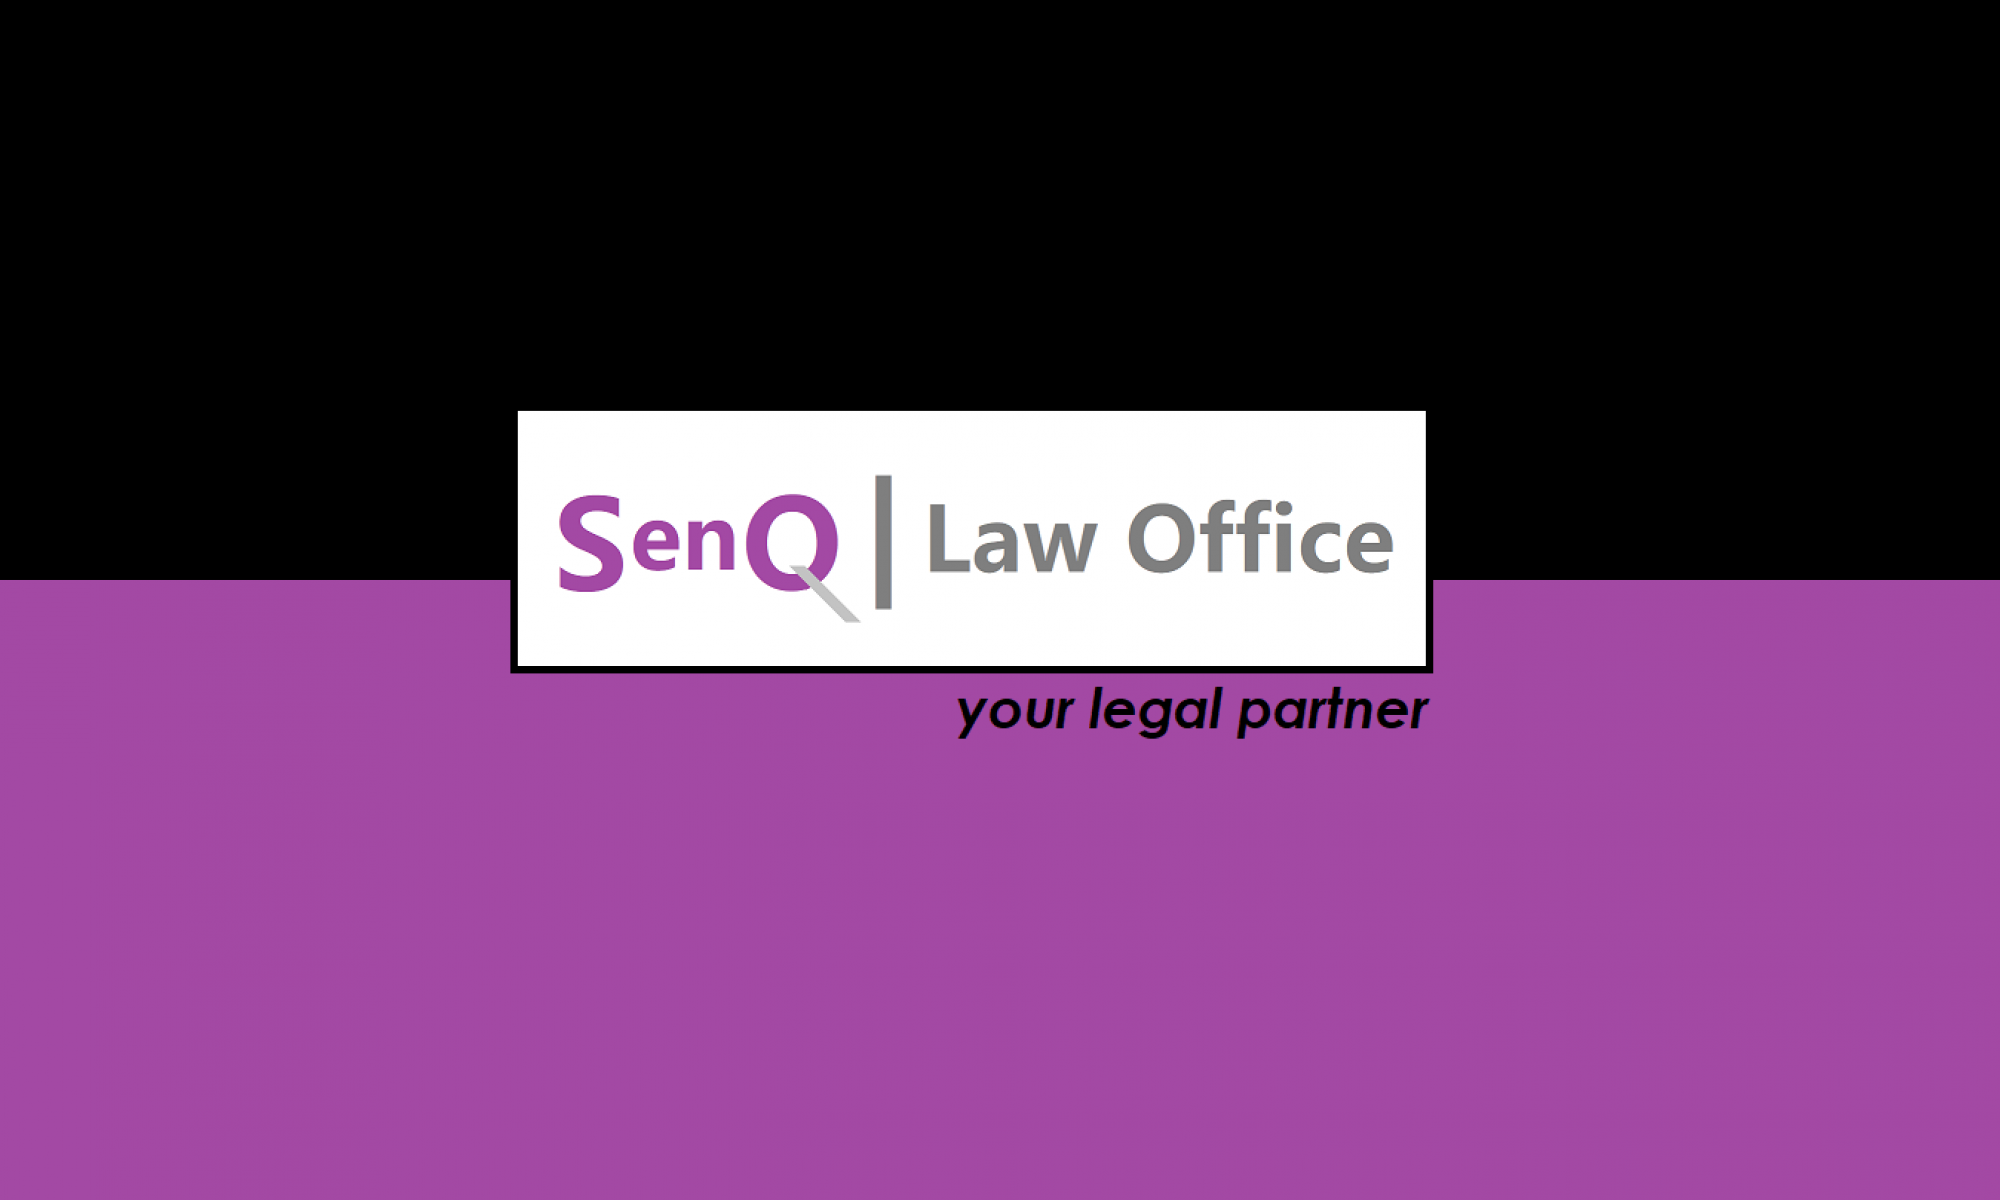 SenQ Law Office